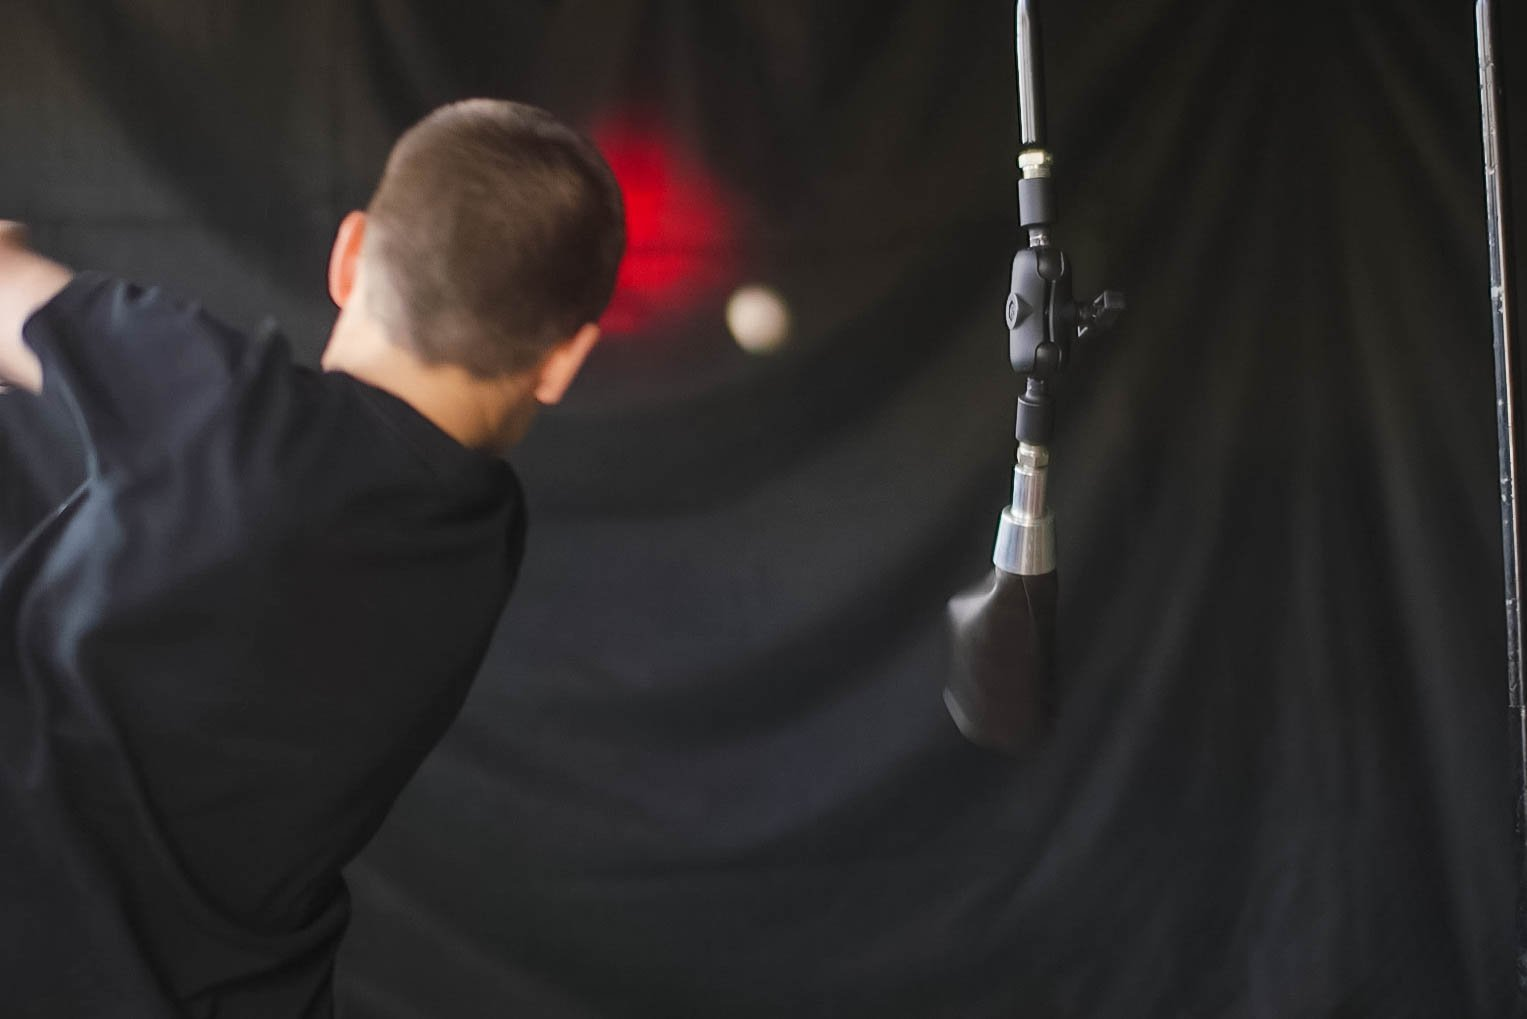 Launch Angle Pro - What is it? | Maximum Velocity Sports